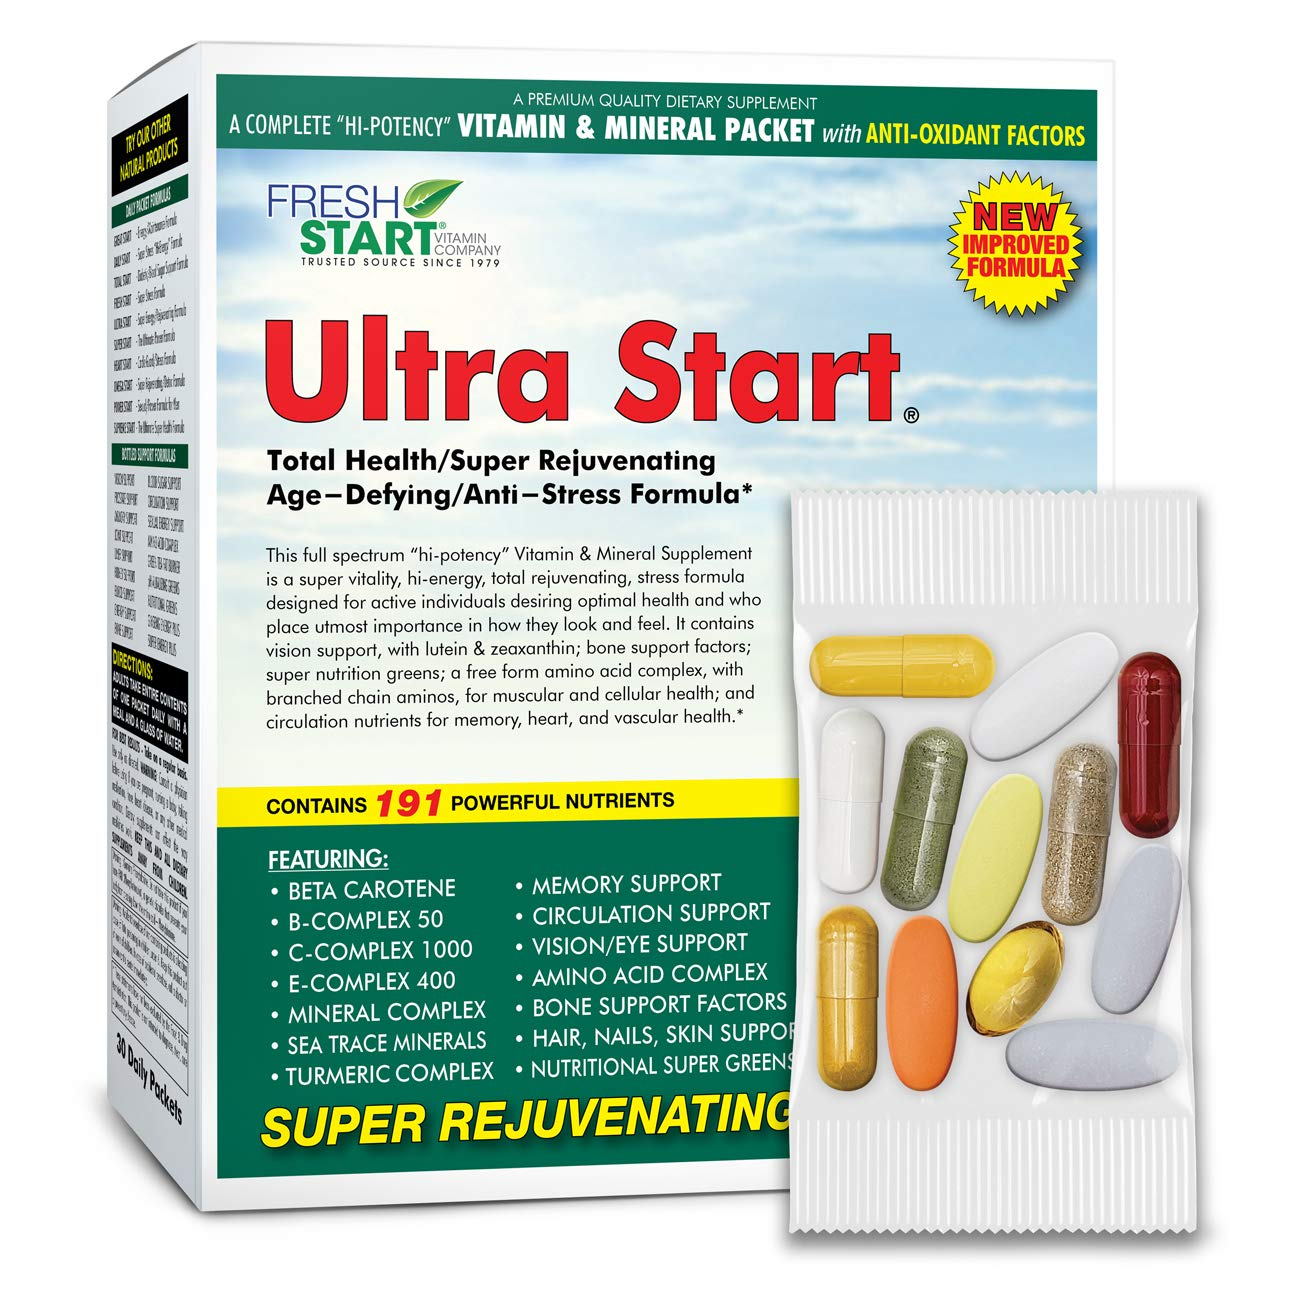 Ultra Start - Complete Daily Vitamin Packet | Premium Multivitamin Supplement with Antioxidants | Anti-Stress + Anti-Aging + Rejuvenating + Total Health | 30-Day Supply